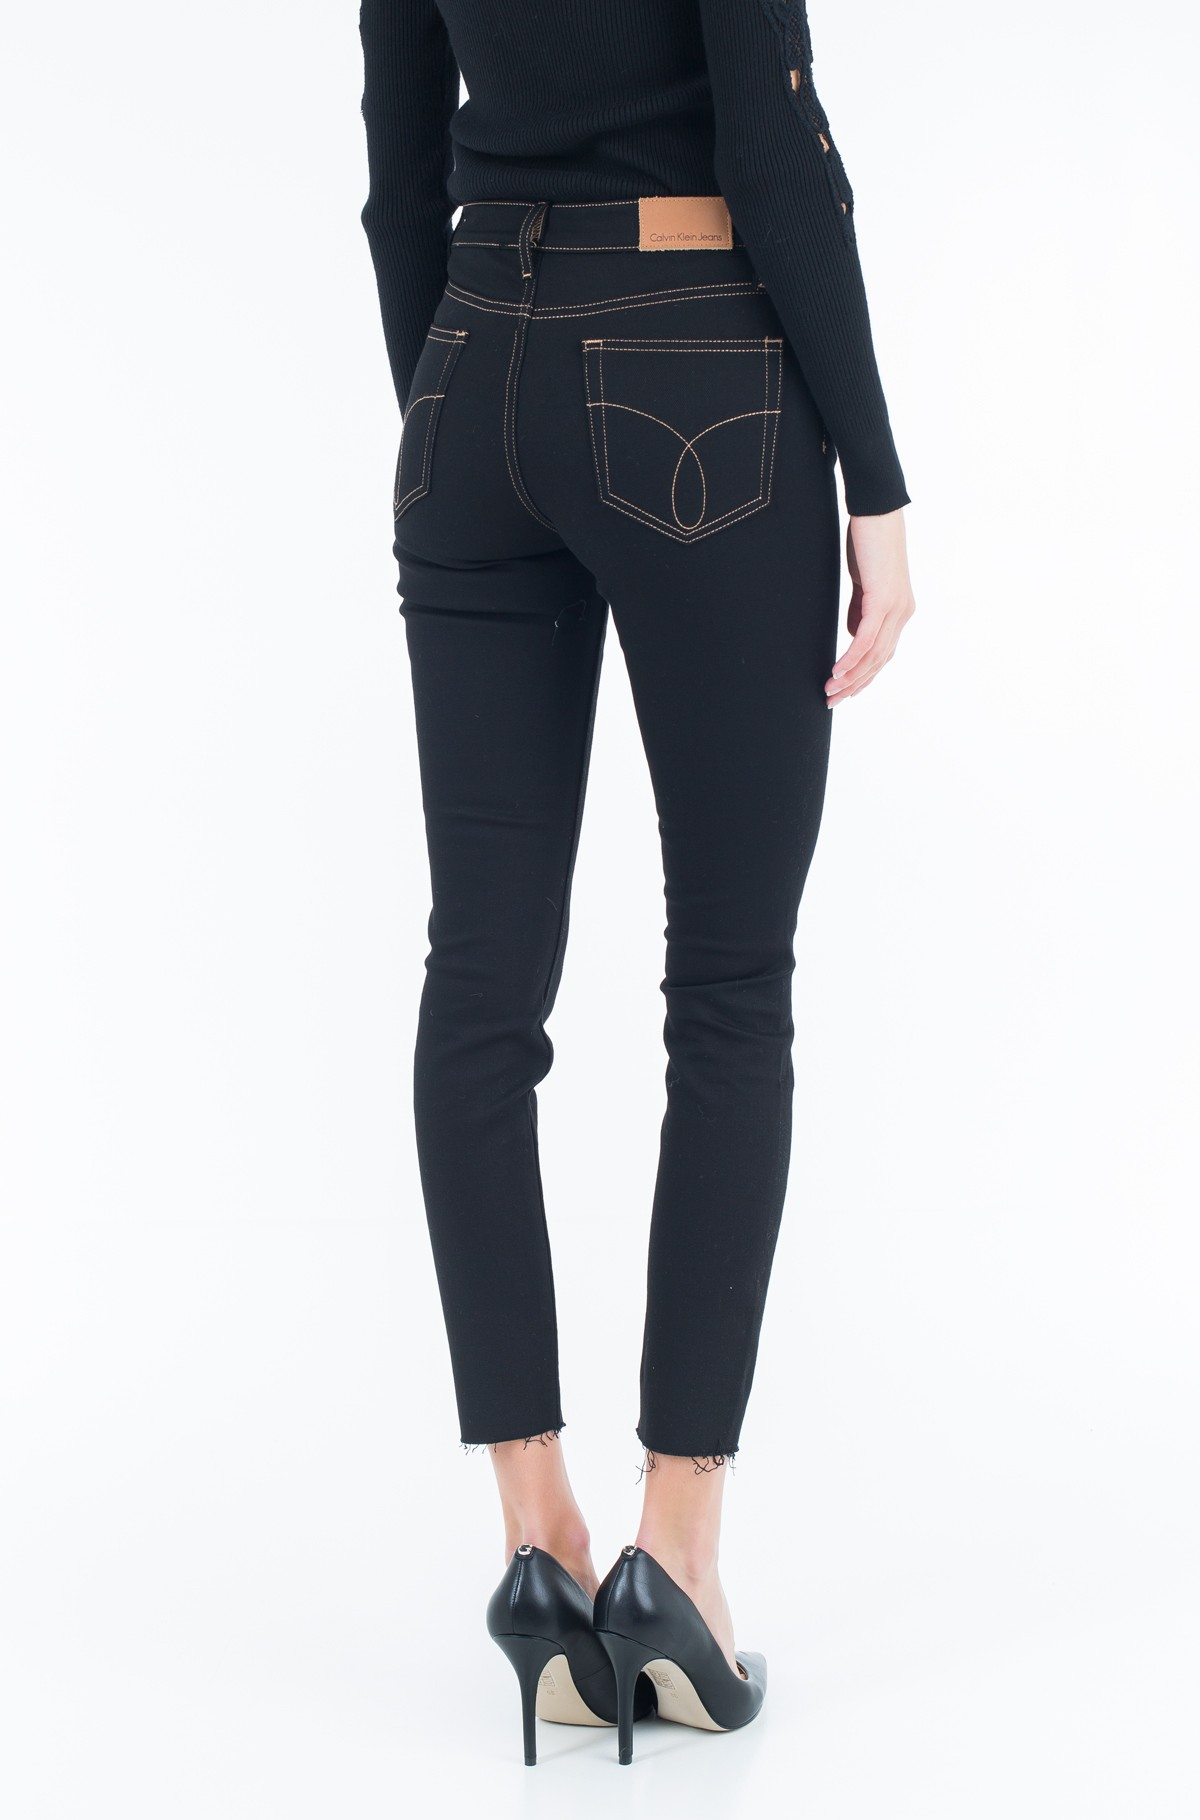 Jeans HR Skinny Ankle - Raw Black-full-2